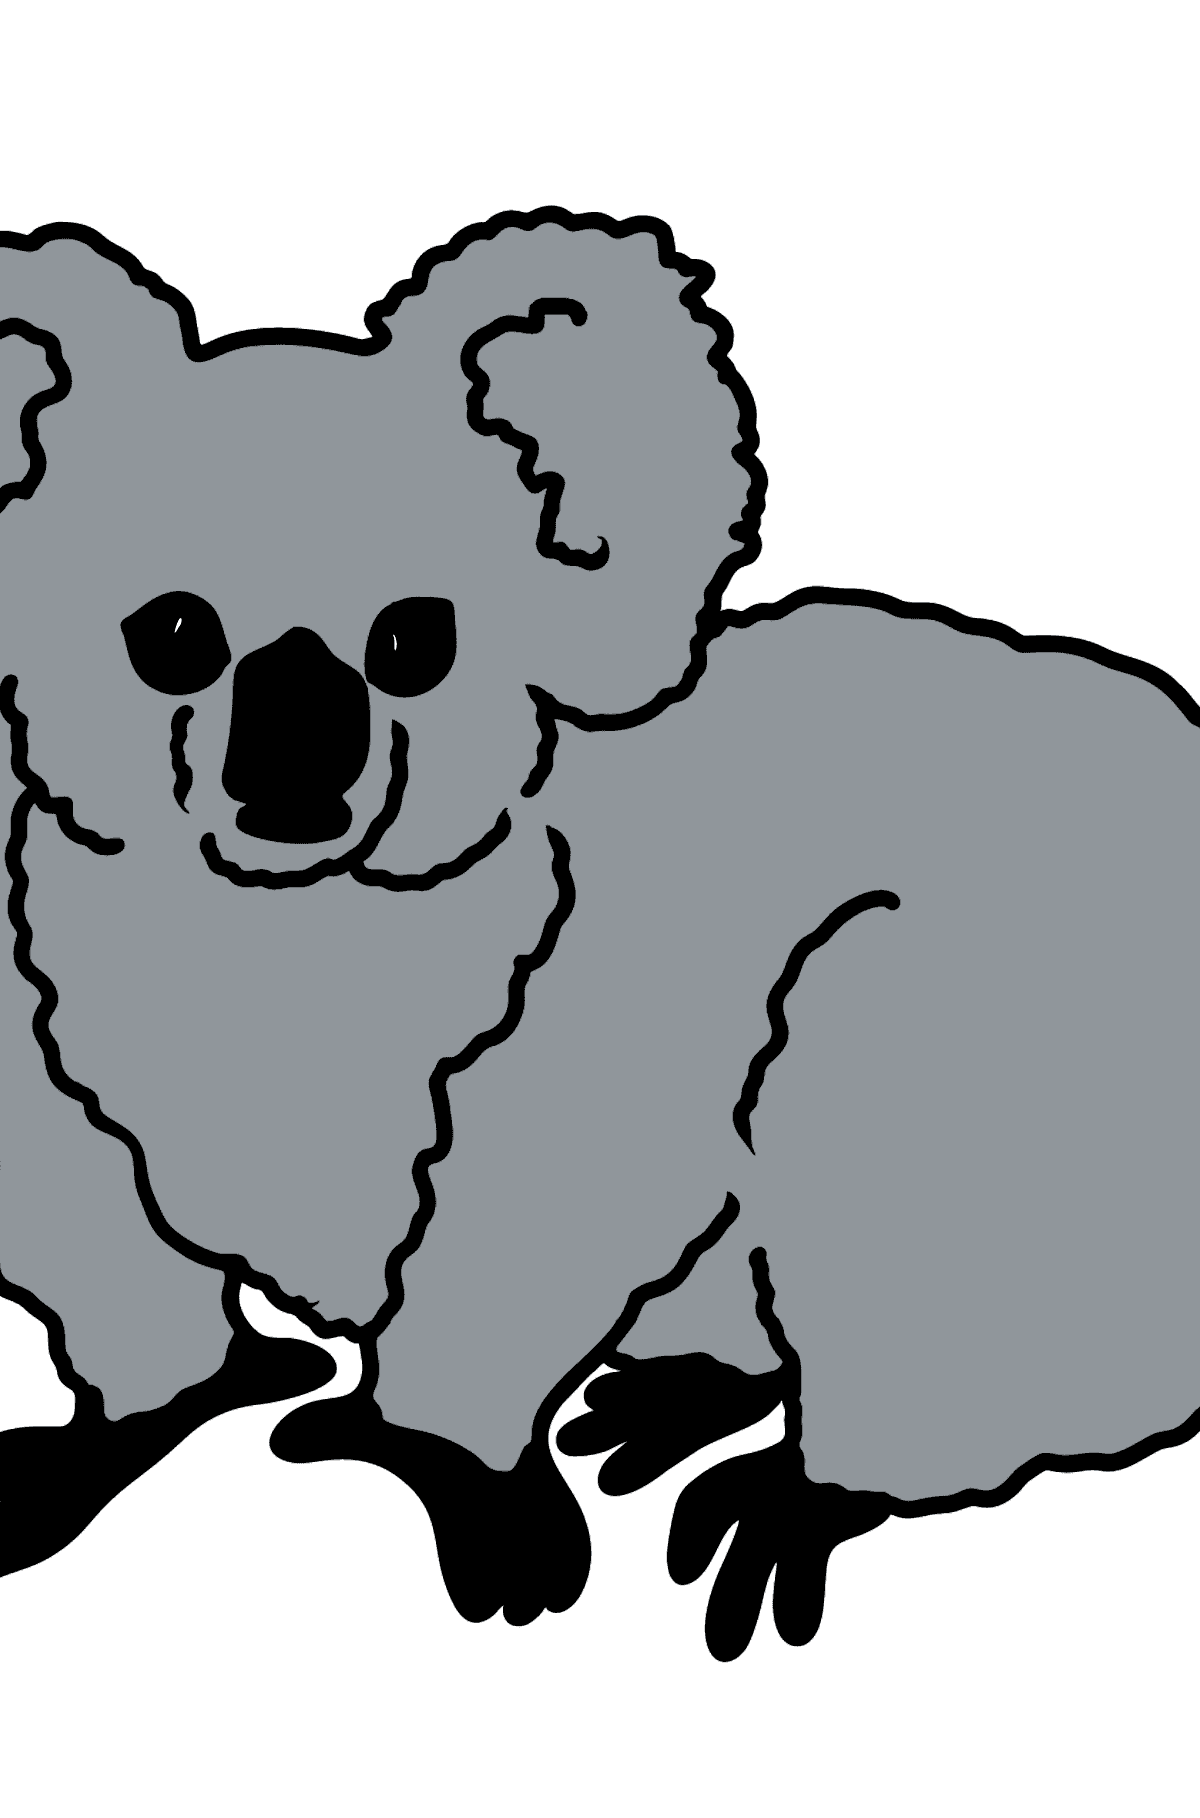 Koala coloring page - Coloring Pages for Kids